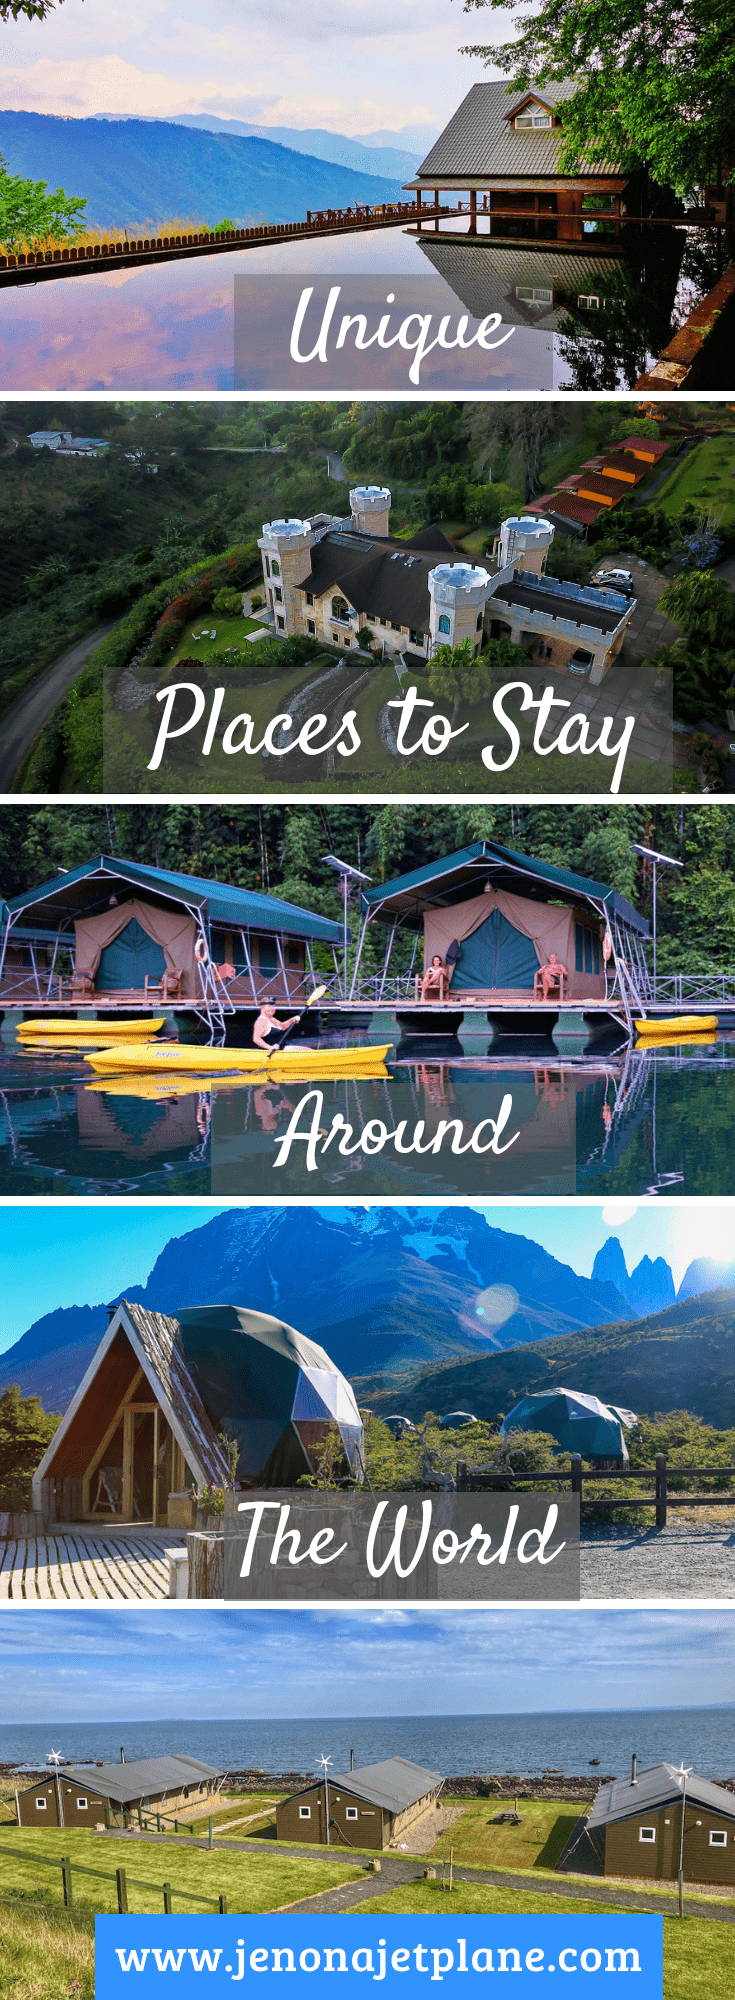 Looking for the most unique places to stay around the world? From igloos to jungle treehouses, these destinations should be on your bucket list! #travelinspiration #travelgoals #bucketlistideas #adventuretravel